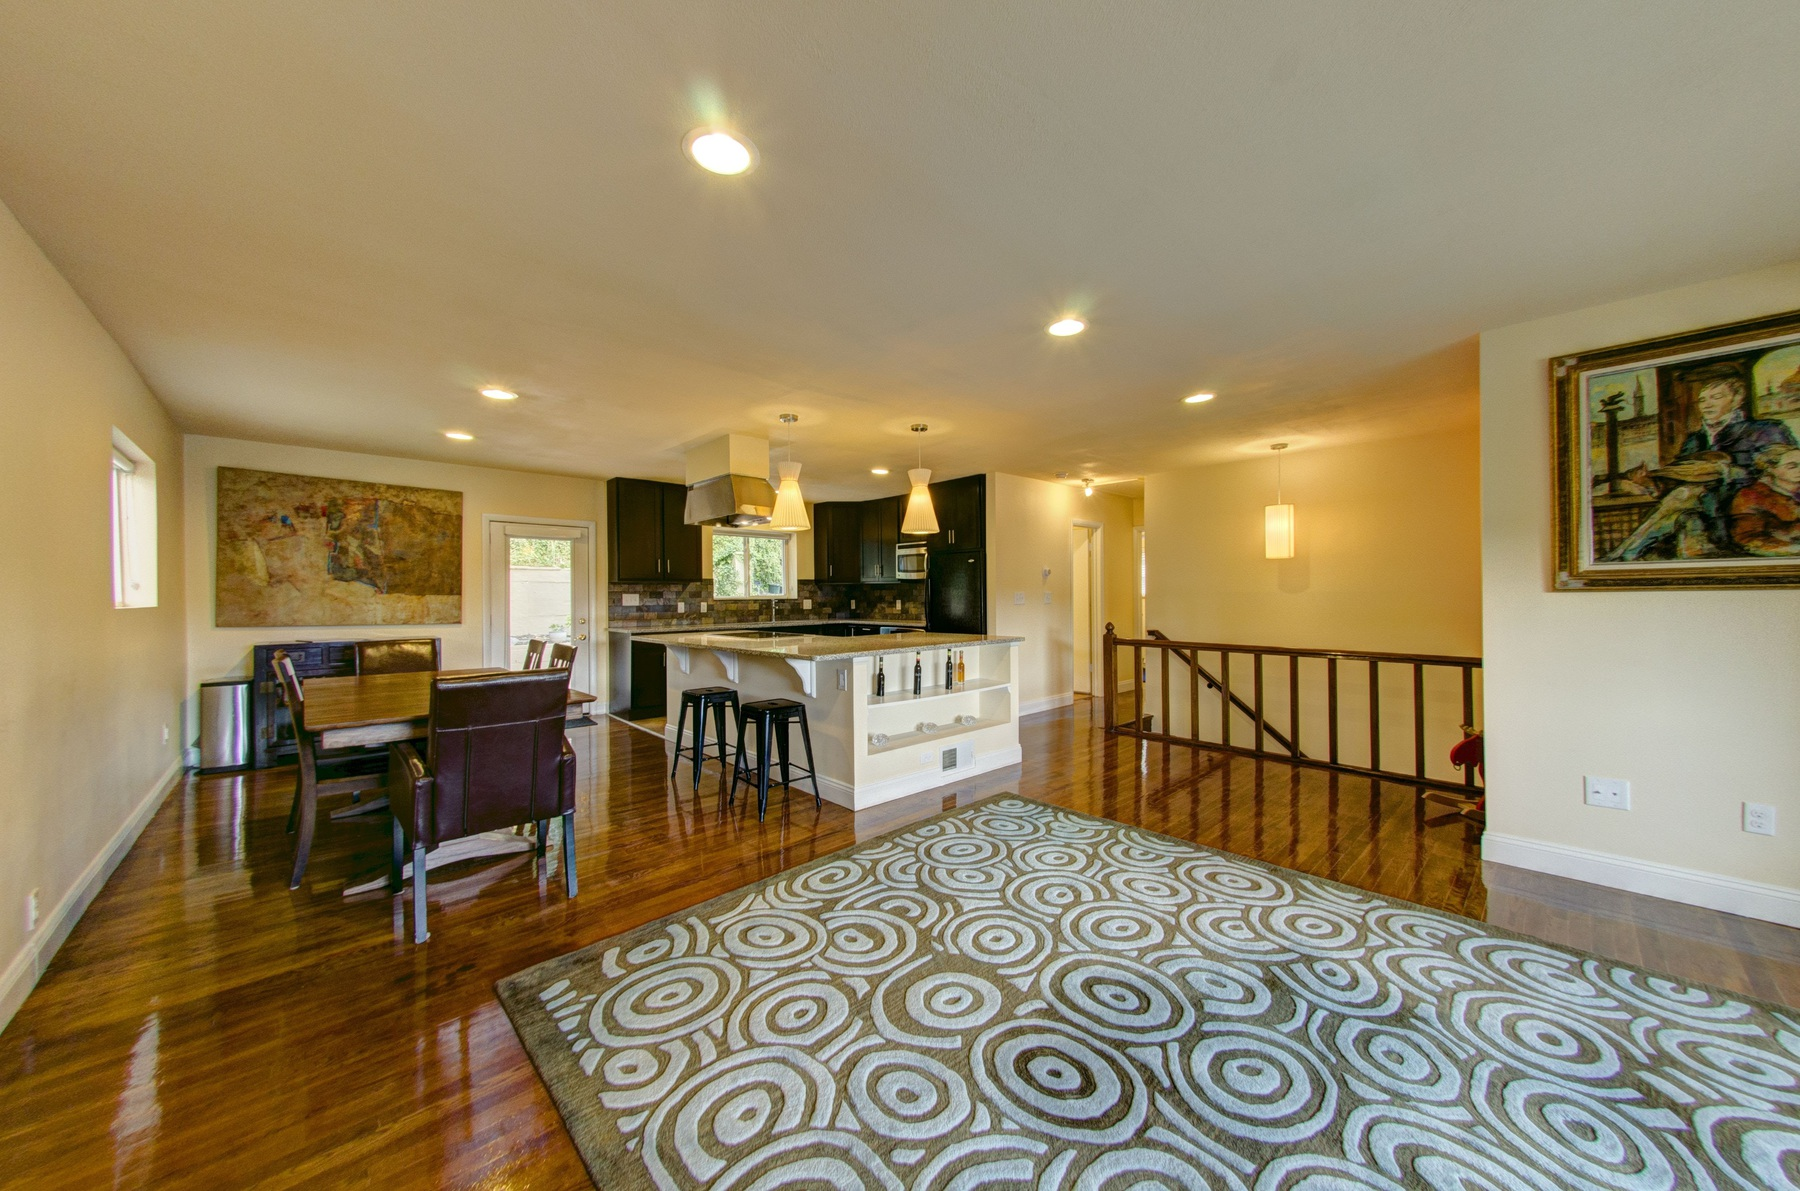 Single Family Home for Sale at 2703 Bryan Place, Alexandria Alexandria, Virginia 22302 United States